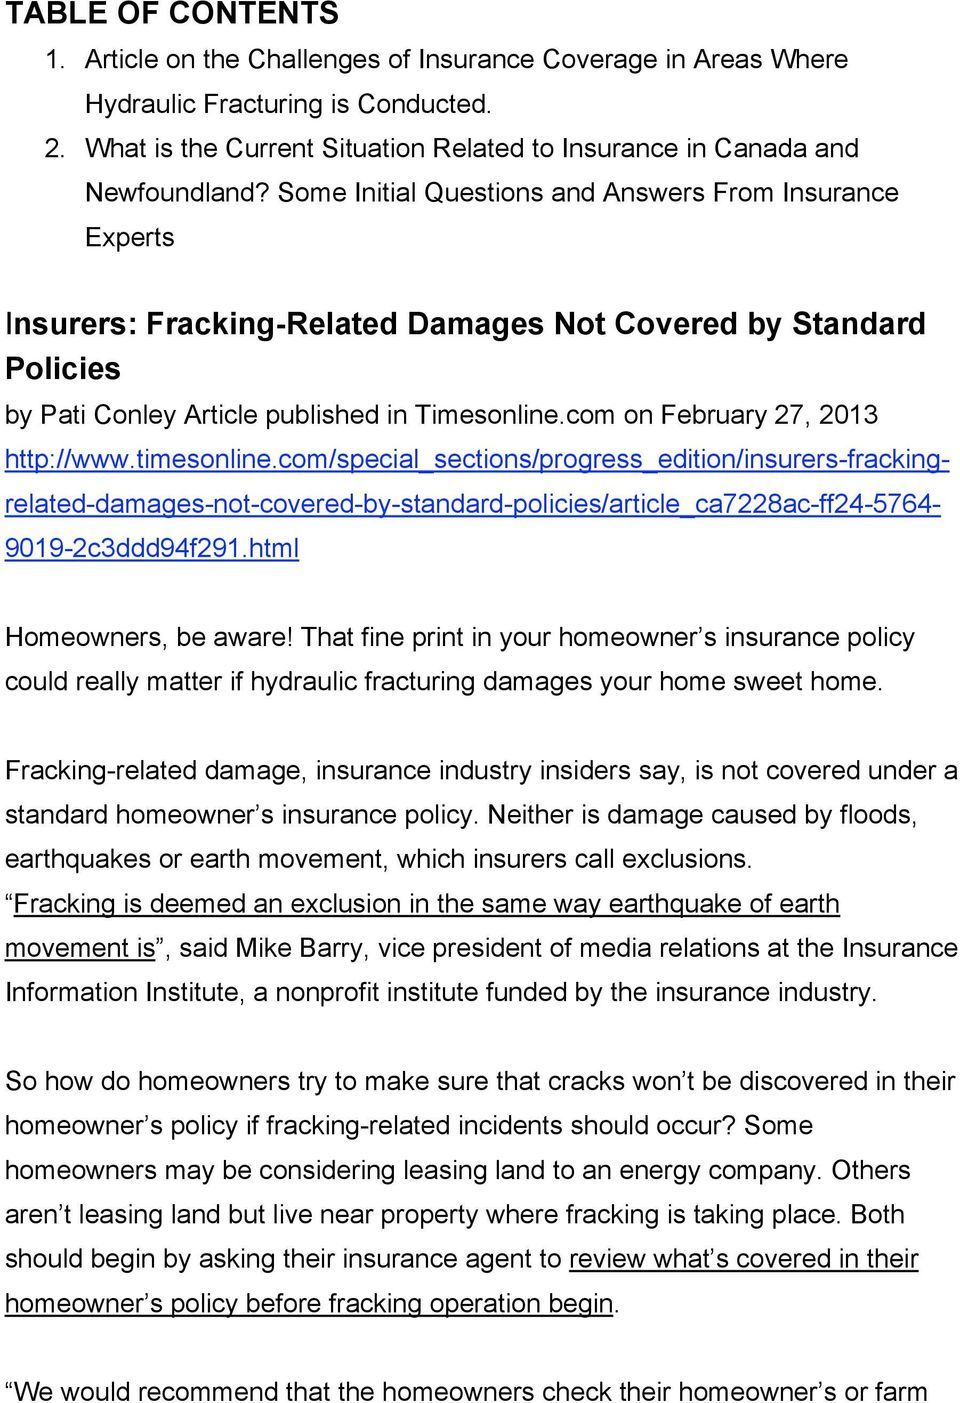 com on February 27, 2013 http://www.timesonline.com/special_sections/progress_edition/insurers-fracking- related-damages-not-covered-by-standard-policies/article_ca7228ac-ff24-5764- 9019-2c3ddd94f291.